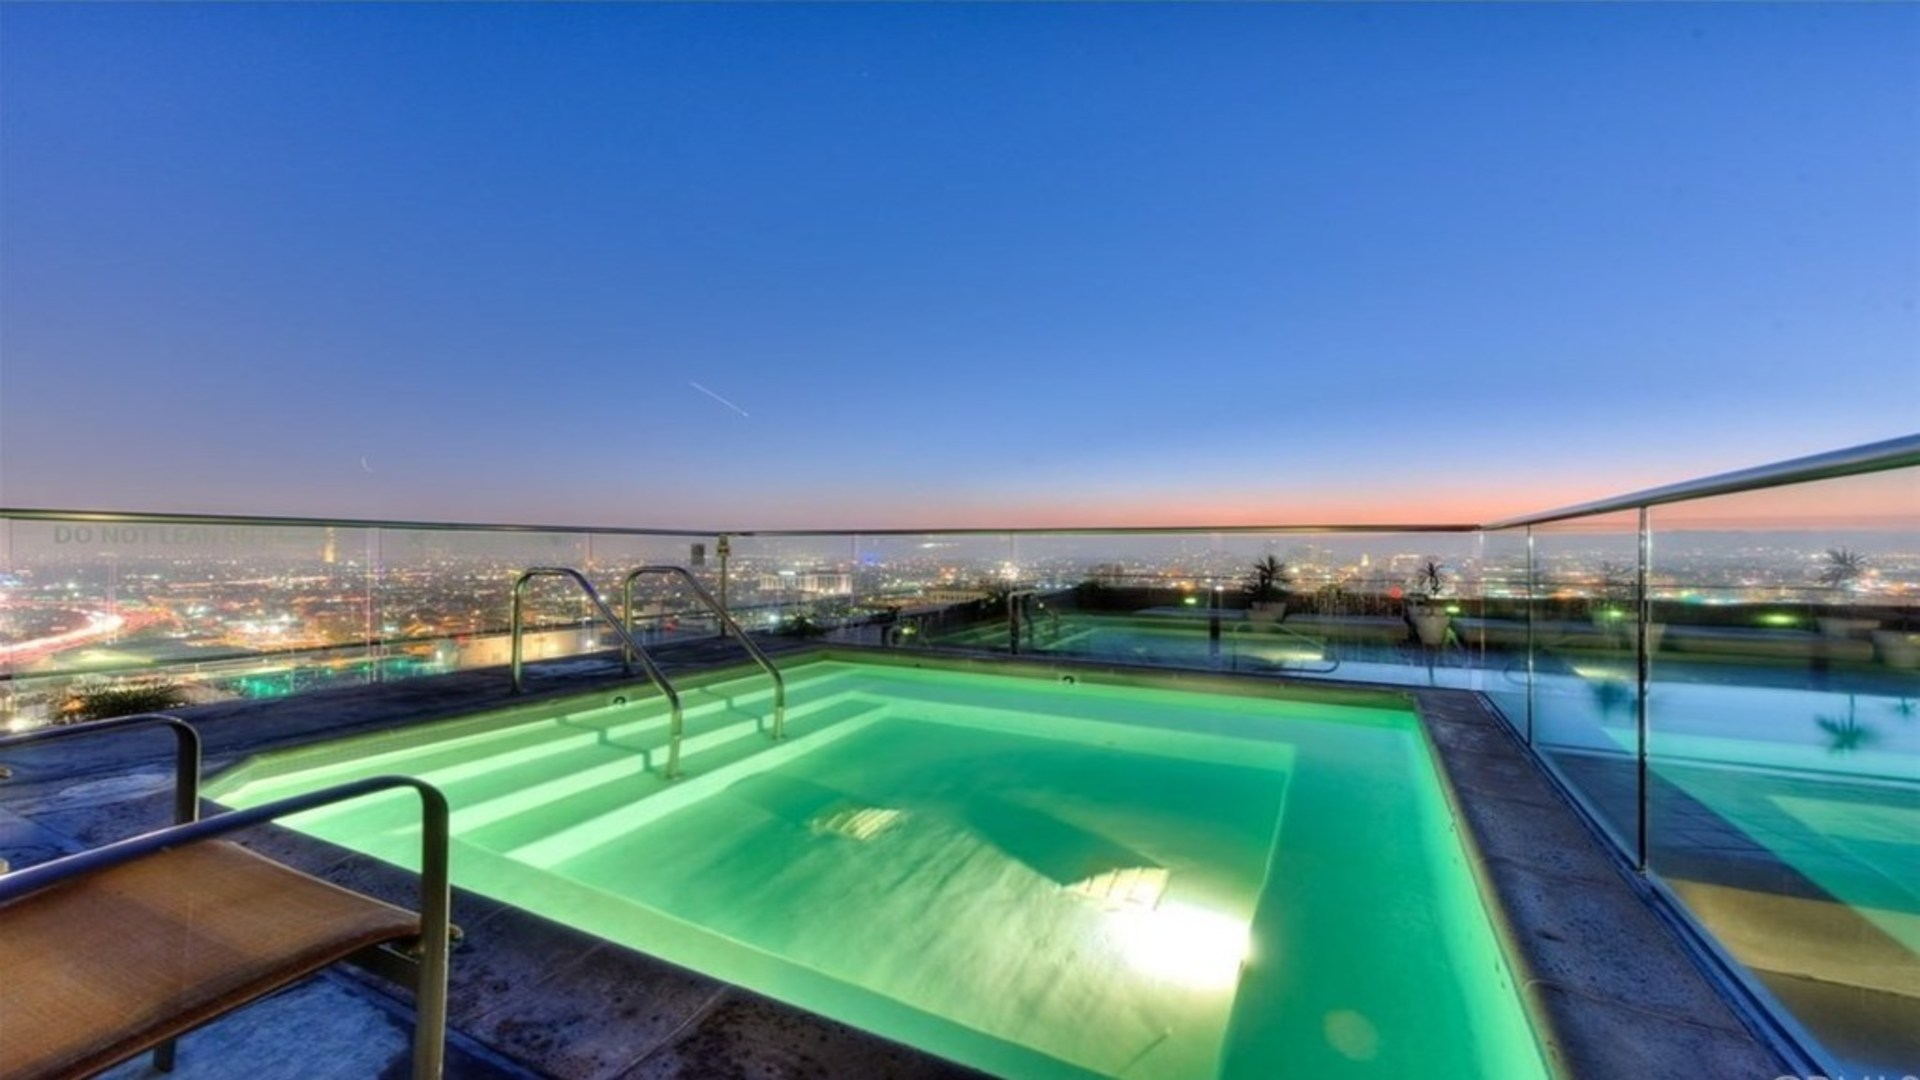 Pool at 1100 Wilshire Apartment